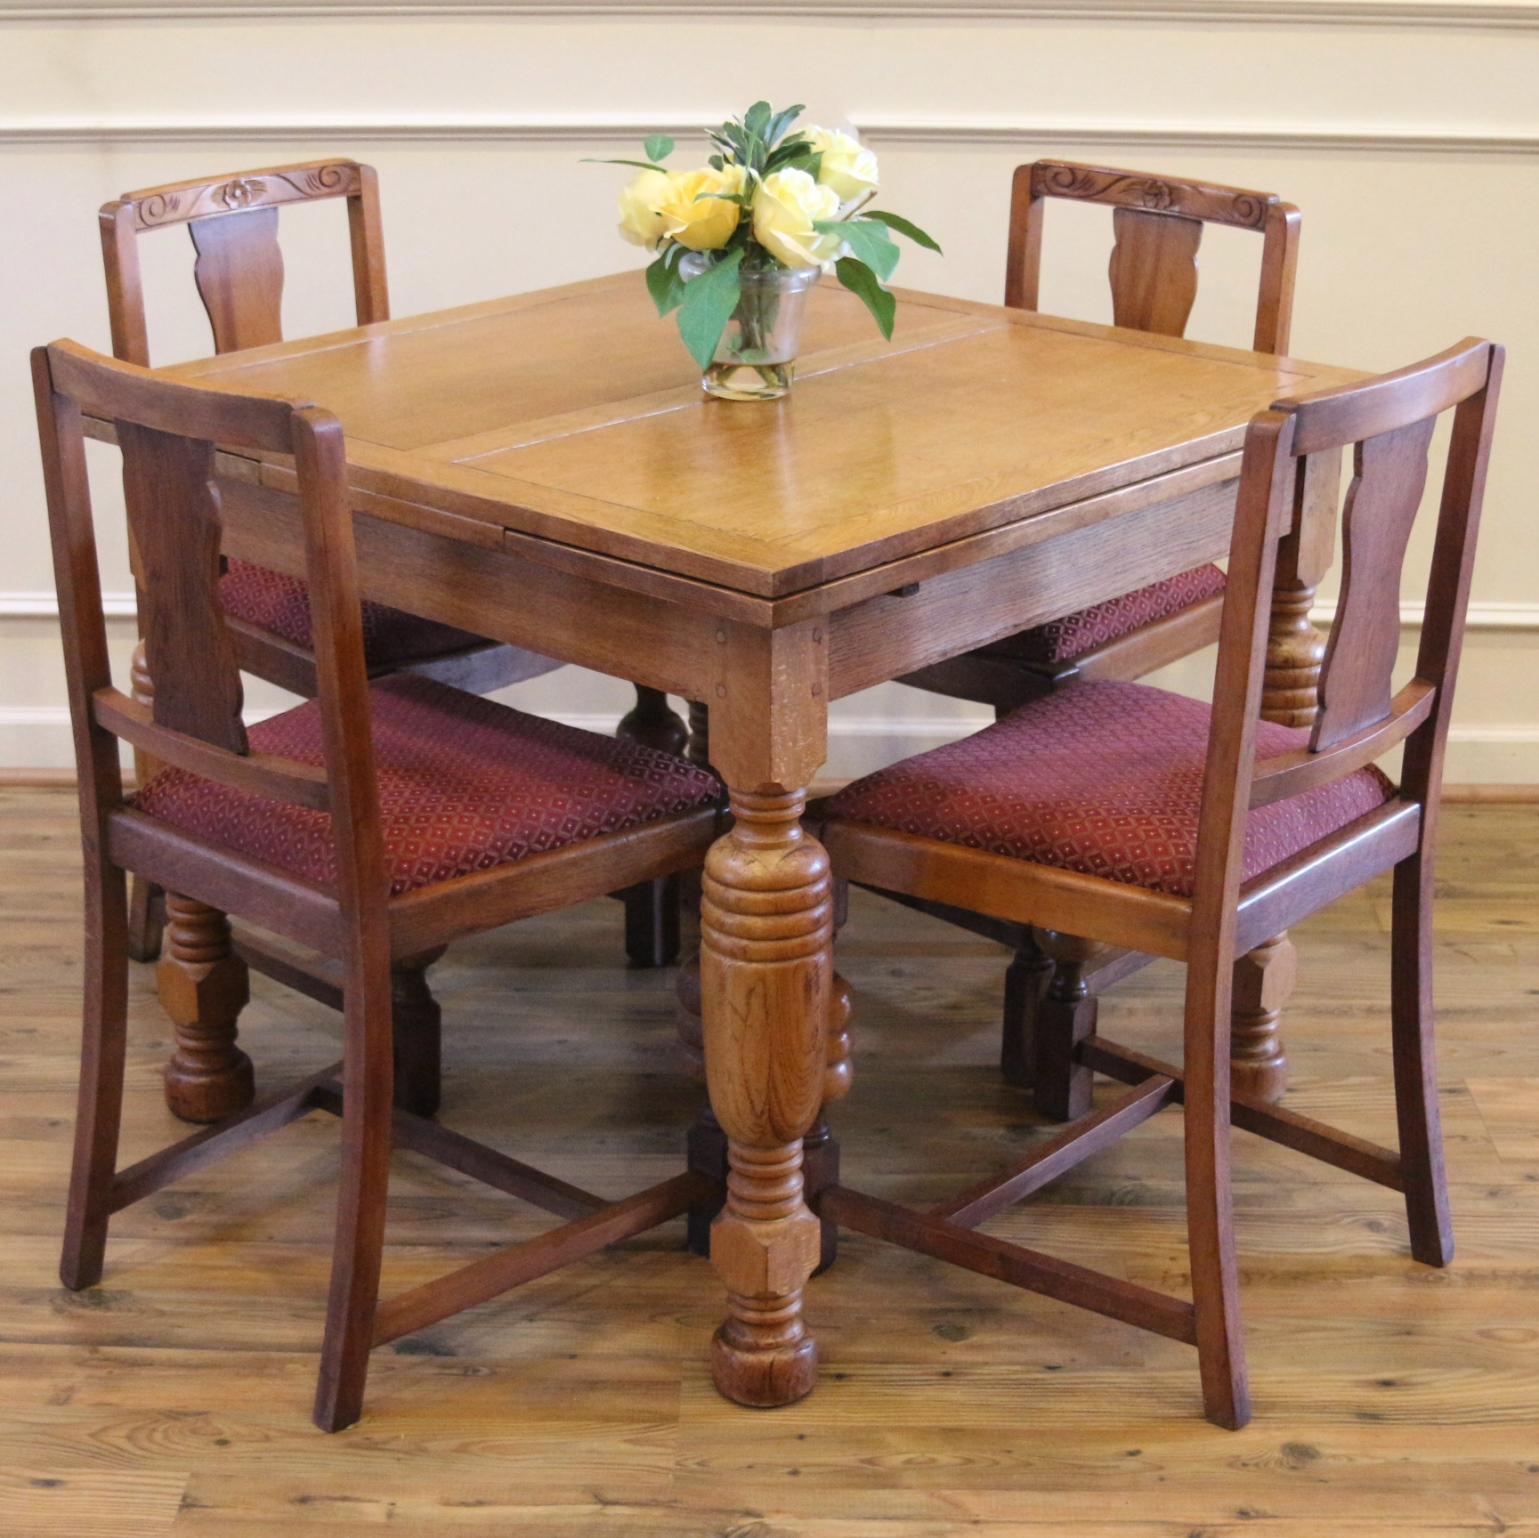 Antique english oak pub table and 4 chairs dining set for for Dining table table and chairs